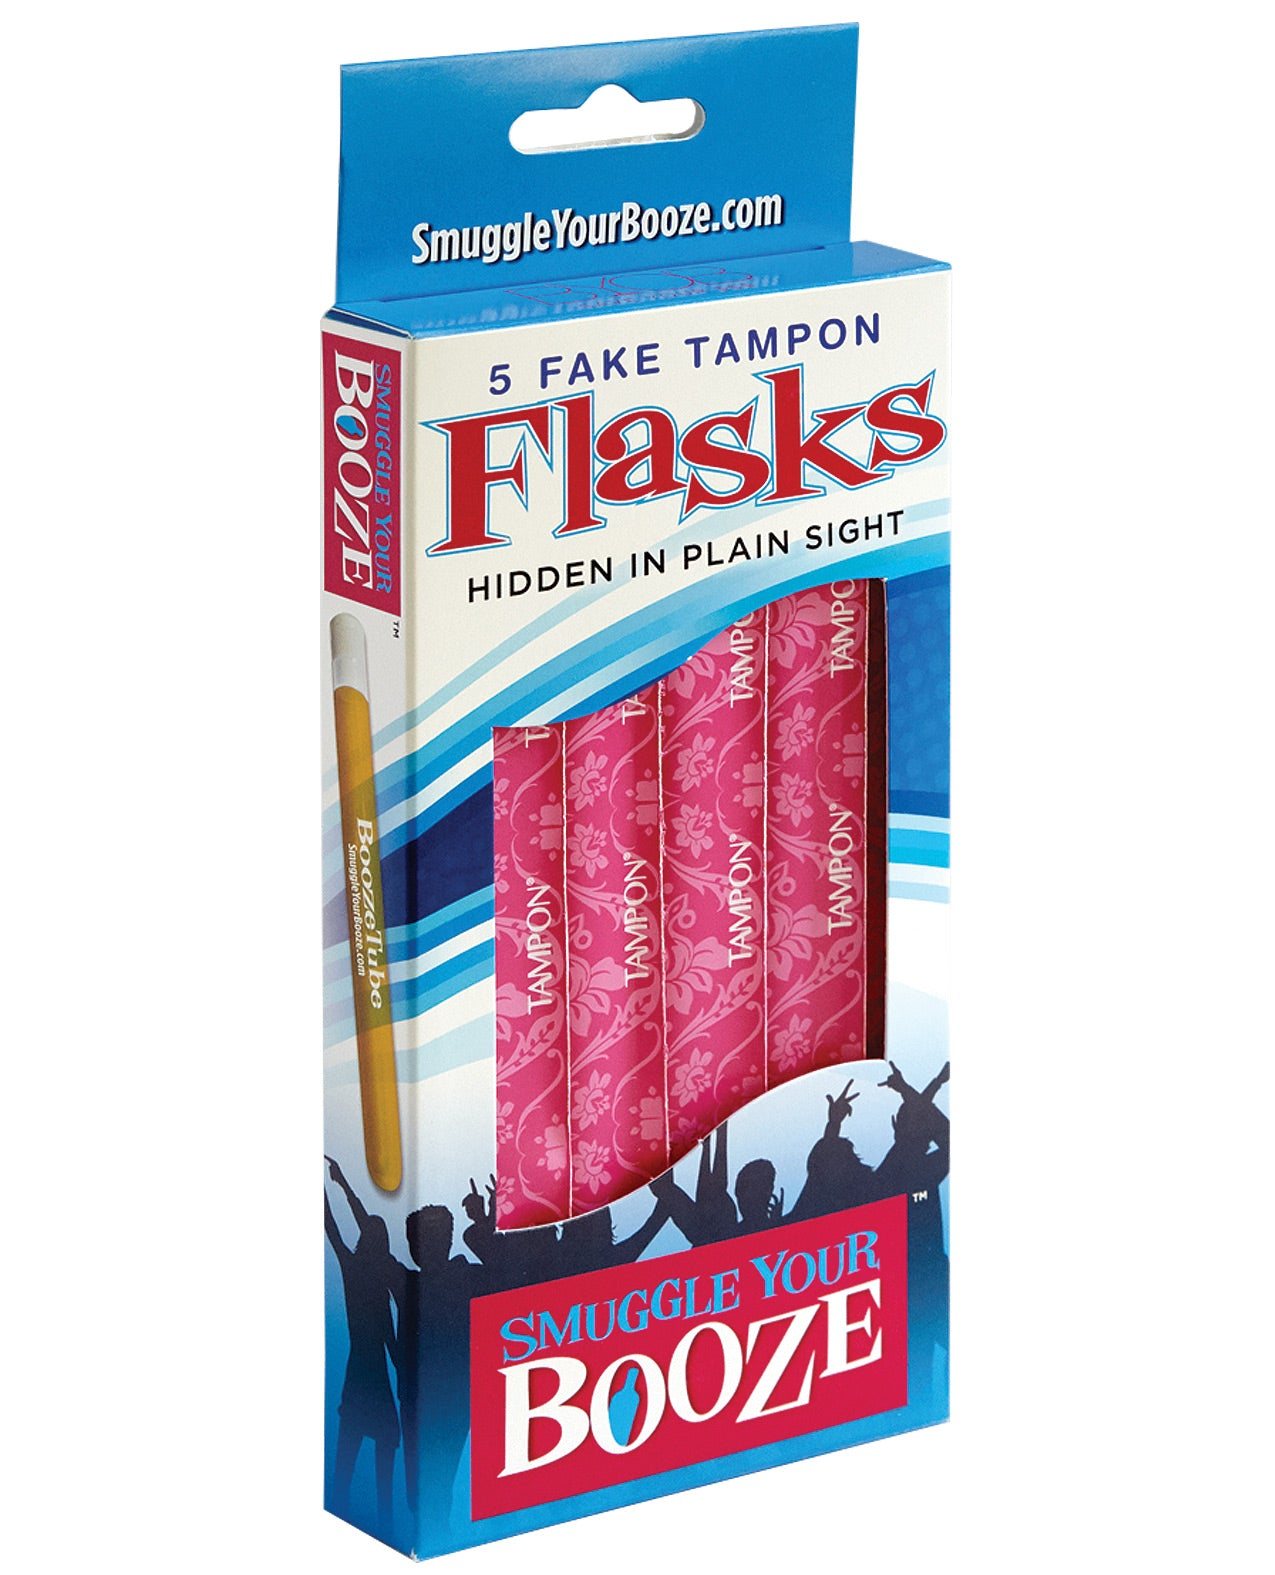 Smuggle Your Booze Tampon Box W-5 Tubes & 5 Wrappers